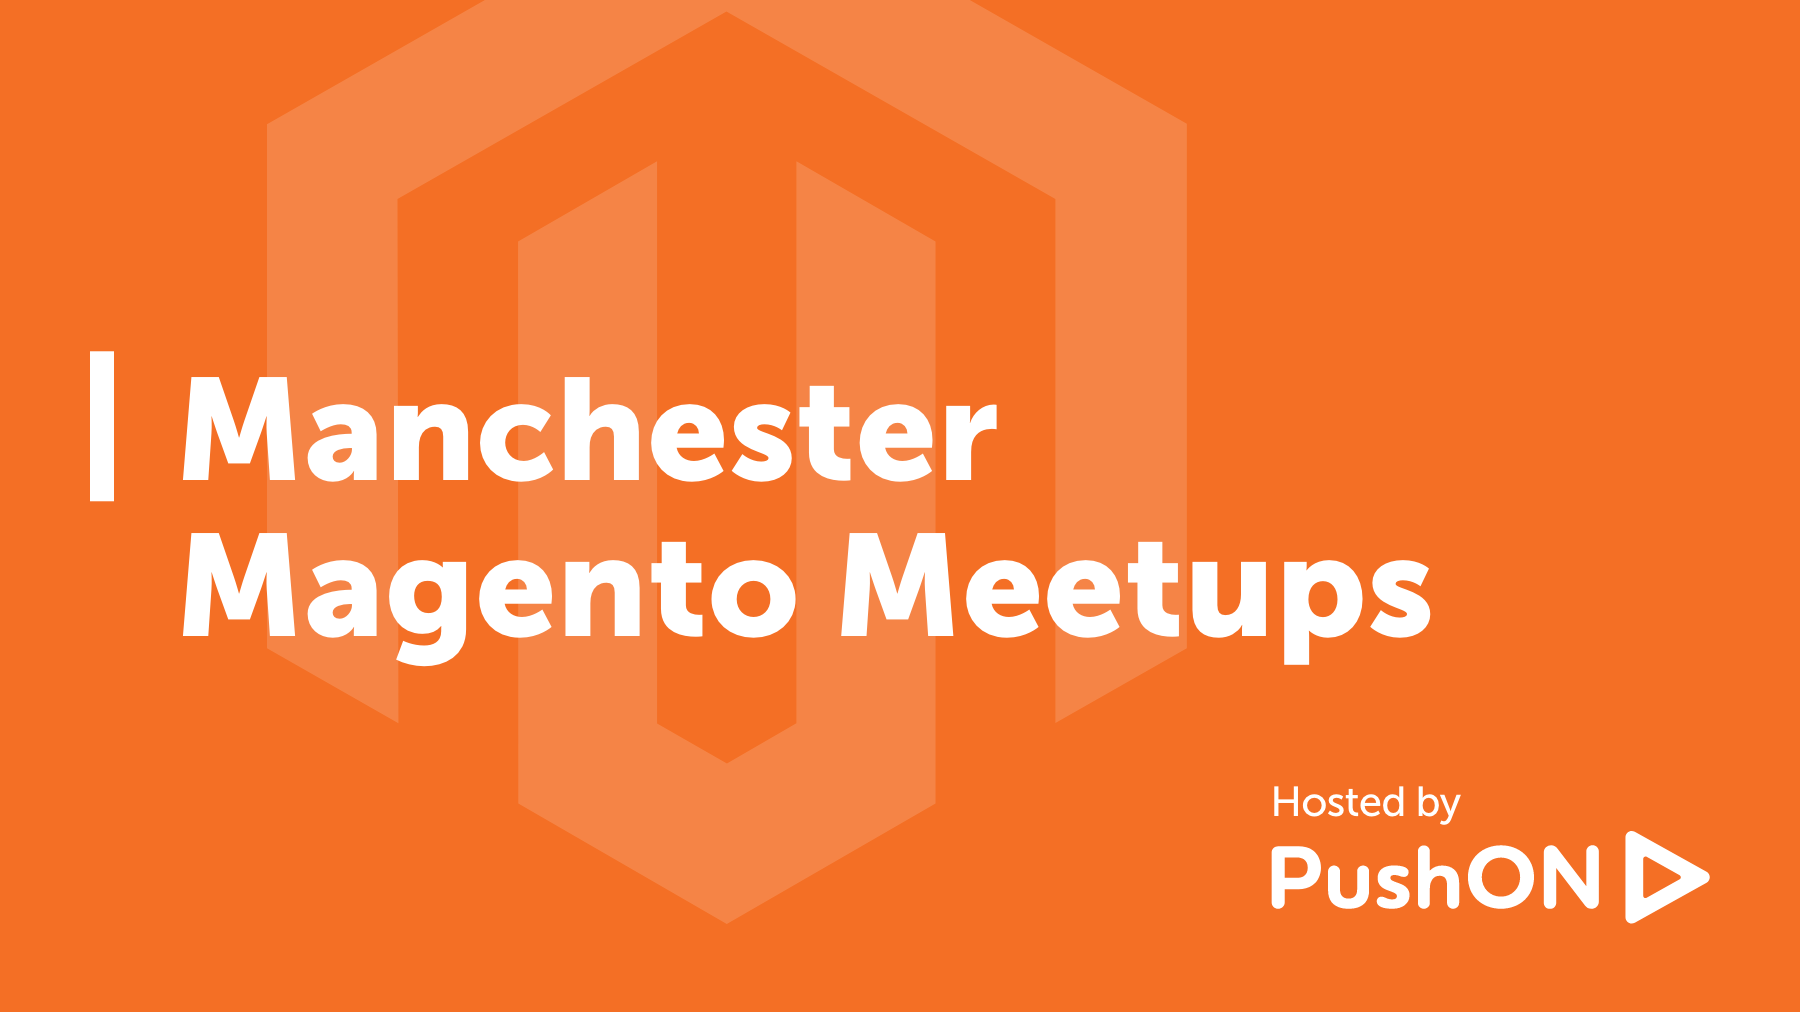 Magento Minds of Manchester